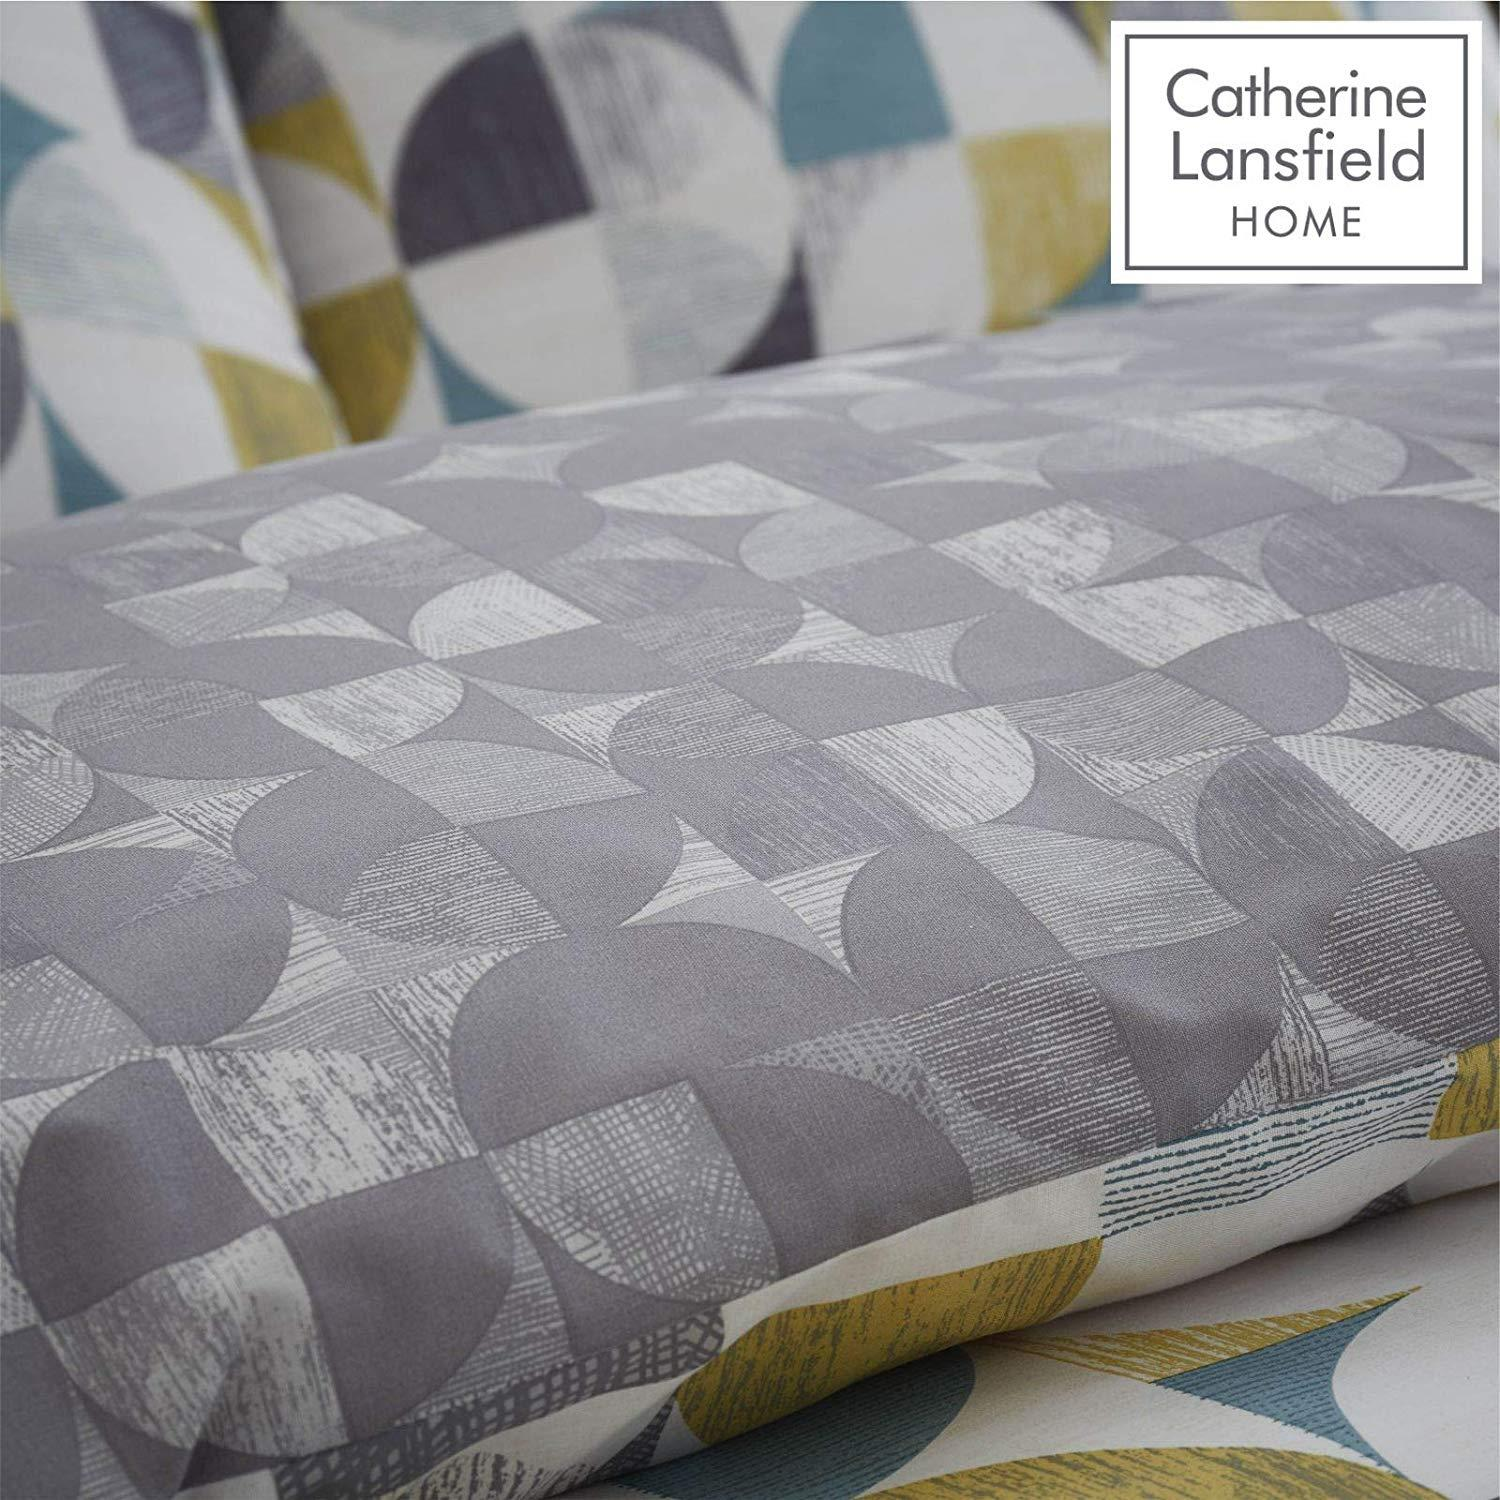 Catherine-Lansfield-Retro-Circles-Multi-Duvet-Set-Reversible-Bedding-Curtain thumbnail 12